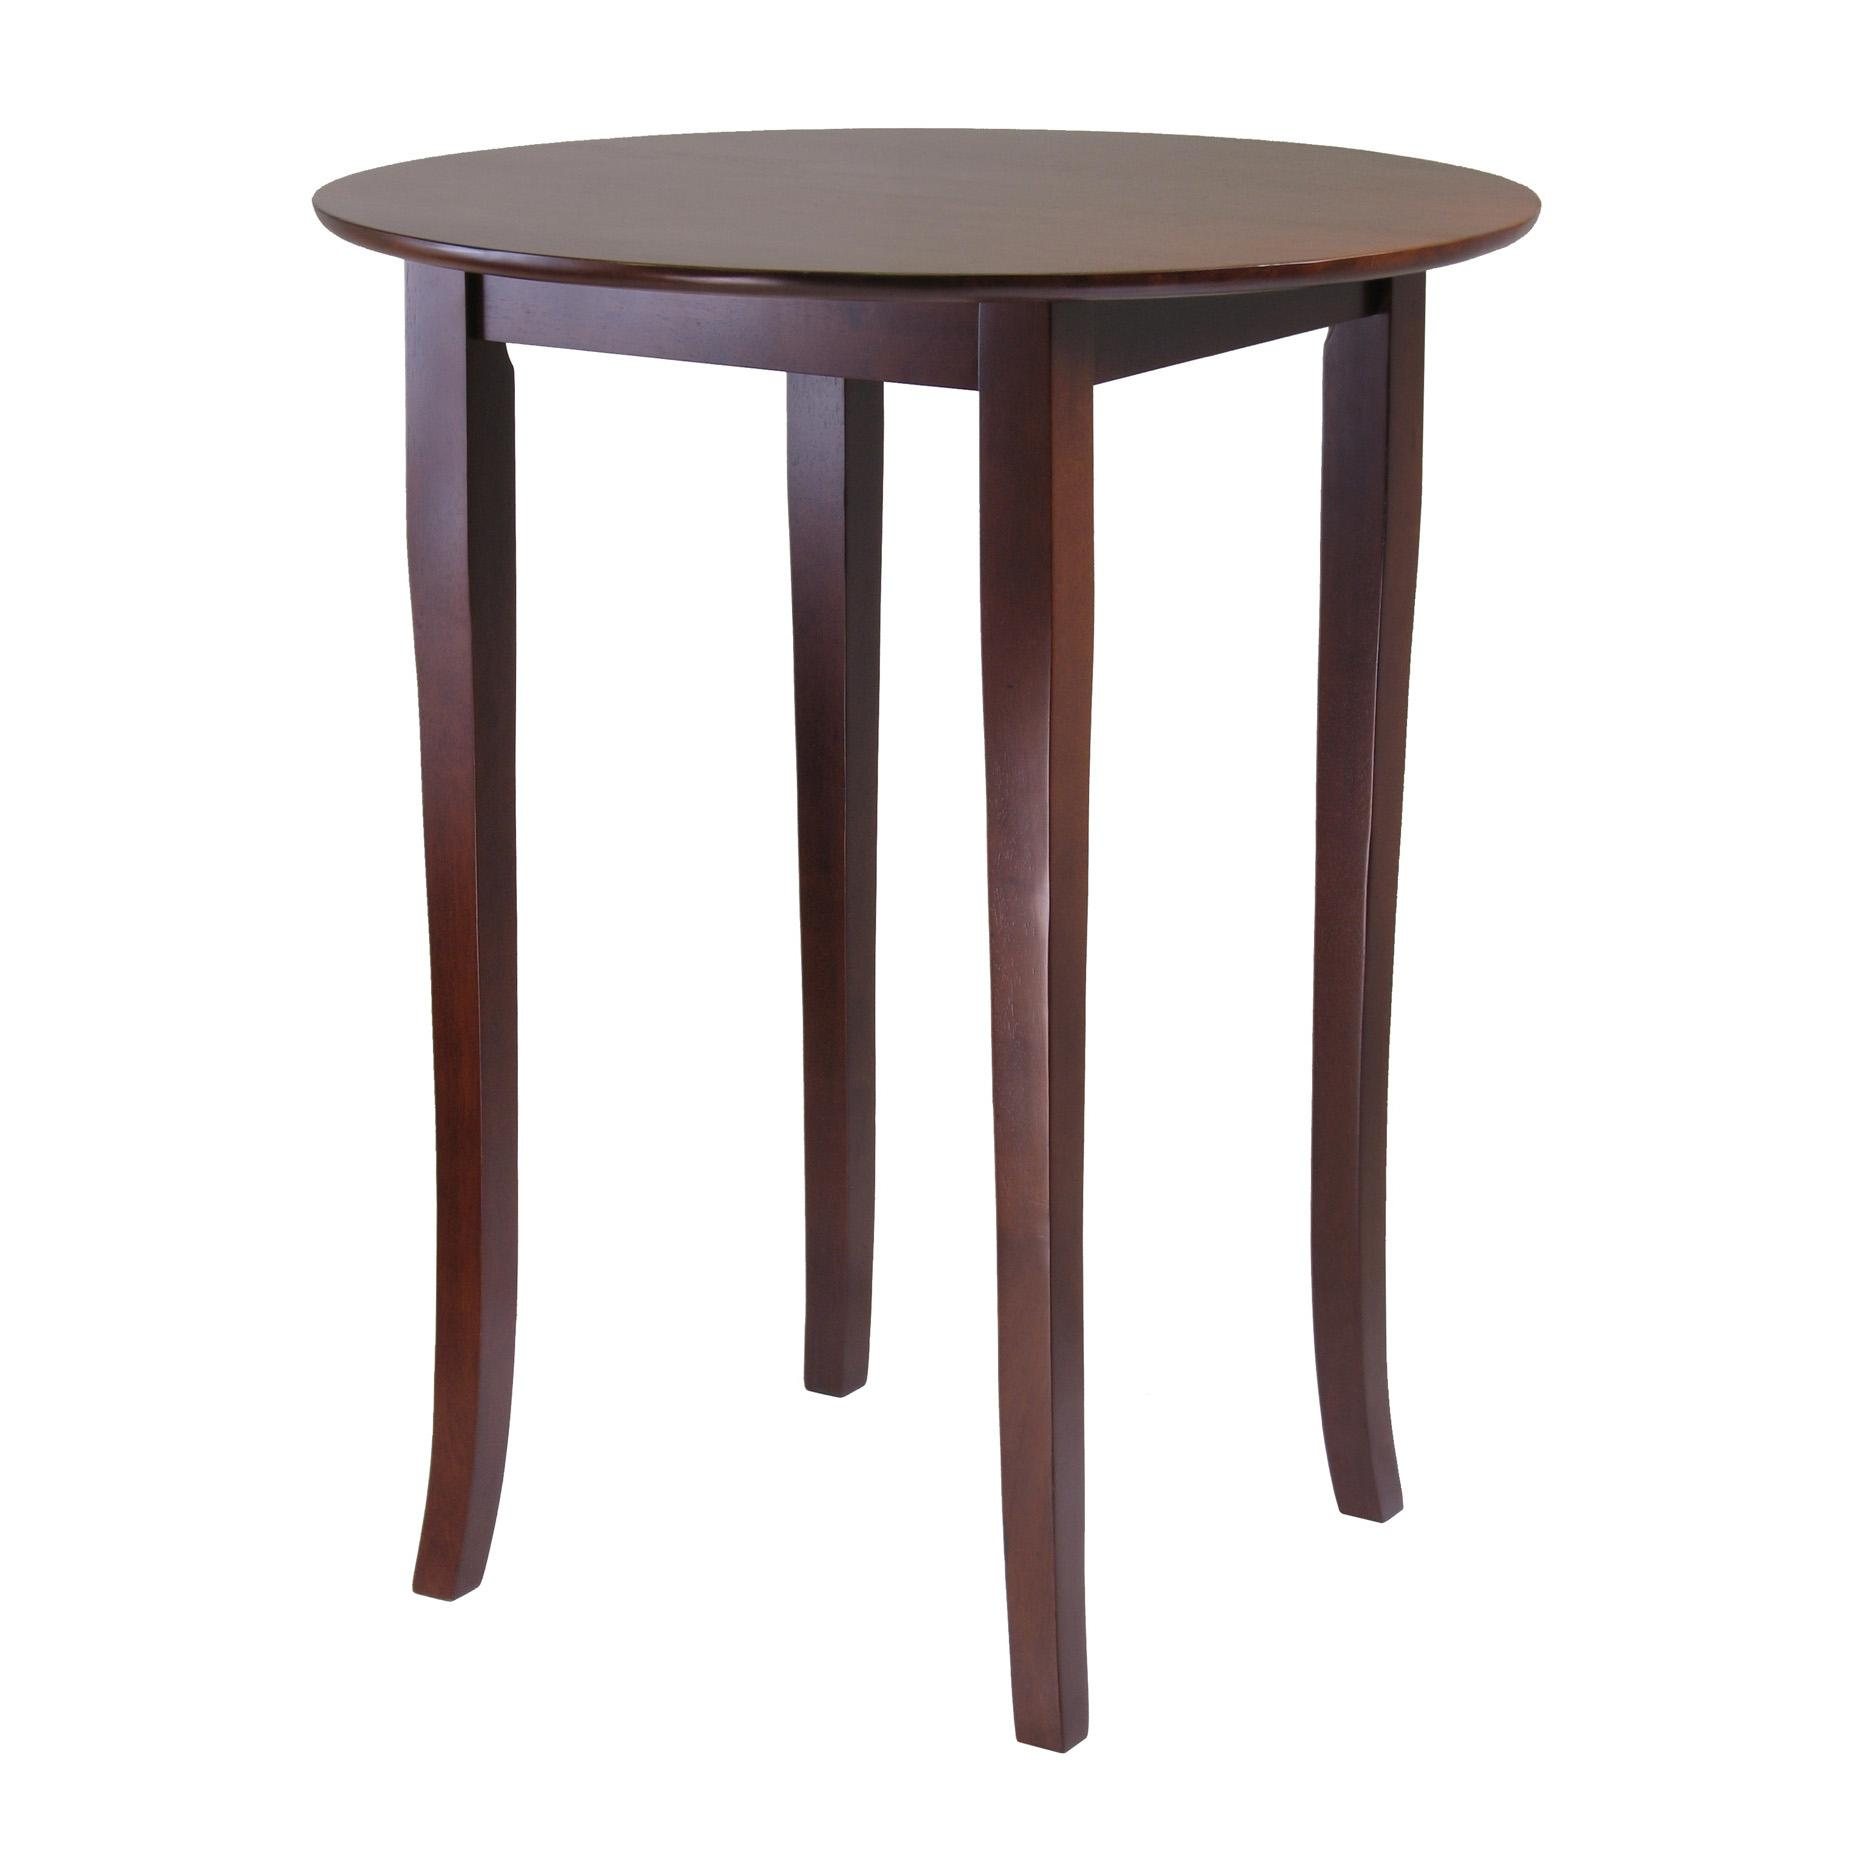 amazoncom winsome fiona round high pub table in antique walnut  - view larger